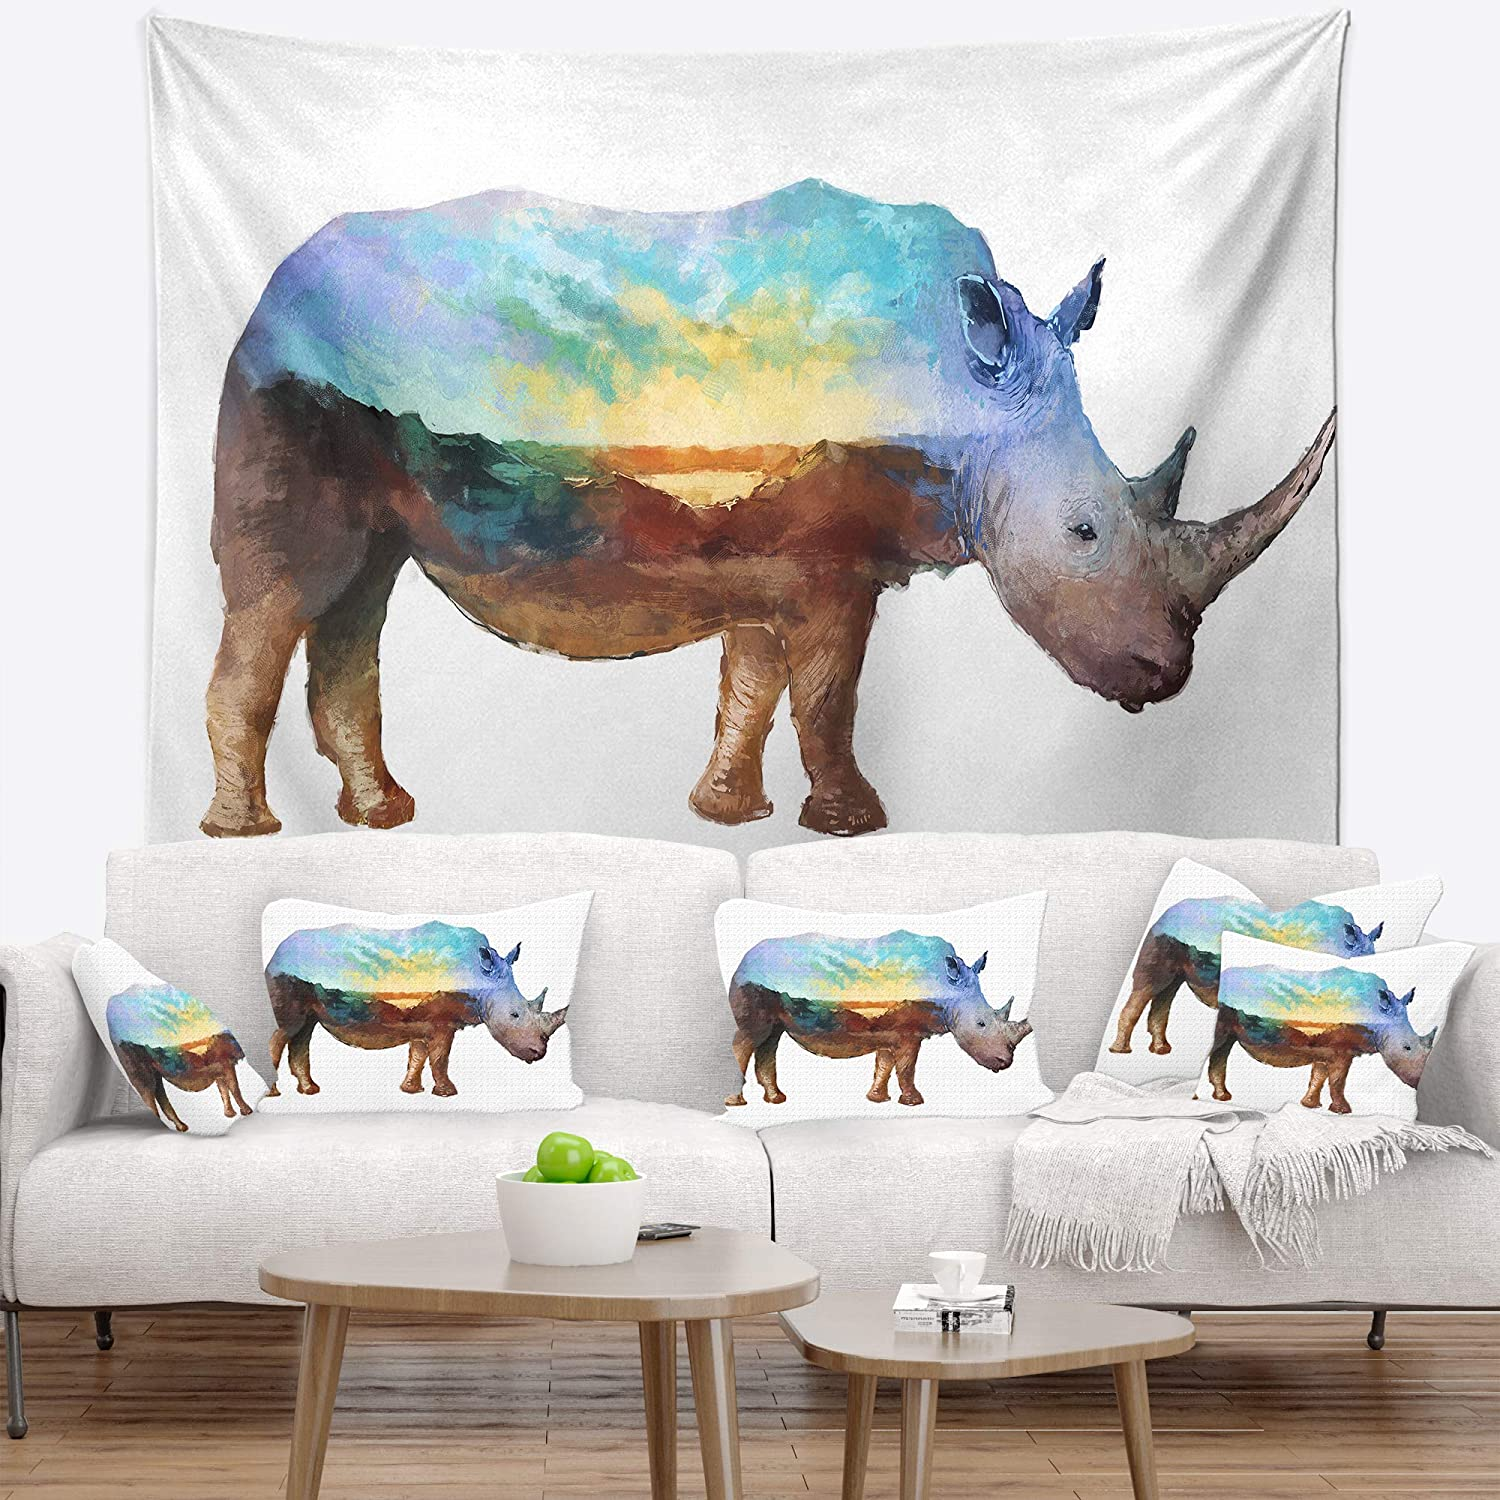 Designart TAP14517-80-68  Rhino Double Exposure Illustration Animal Blanket D/écor Art for Home and Office Wall Tapestry x Large x 68 in Created On Lightweight Polyester Fabric 80 in